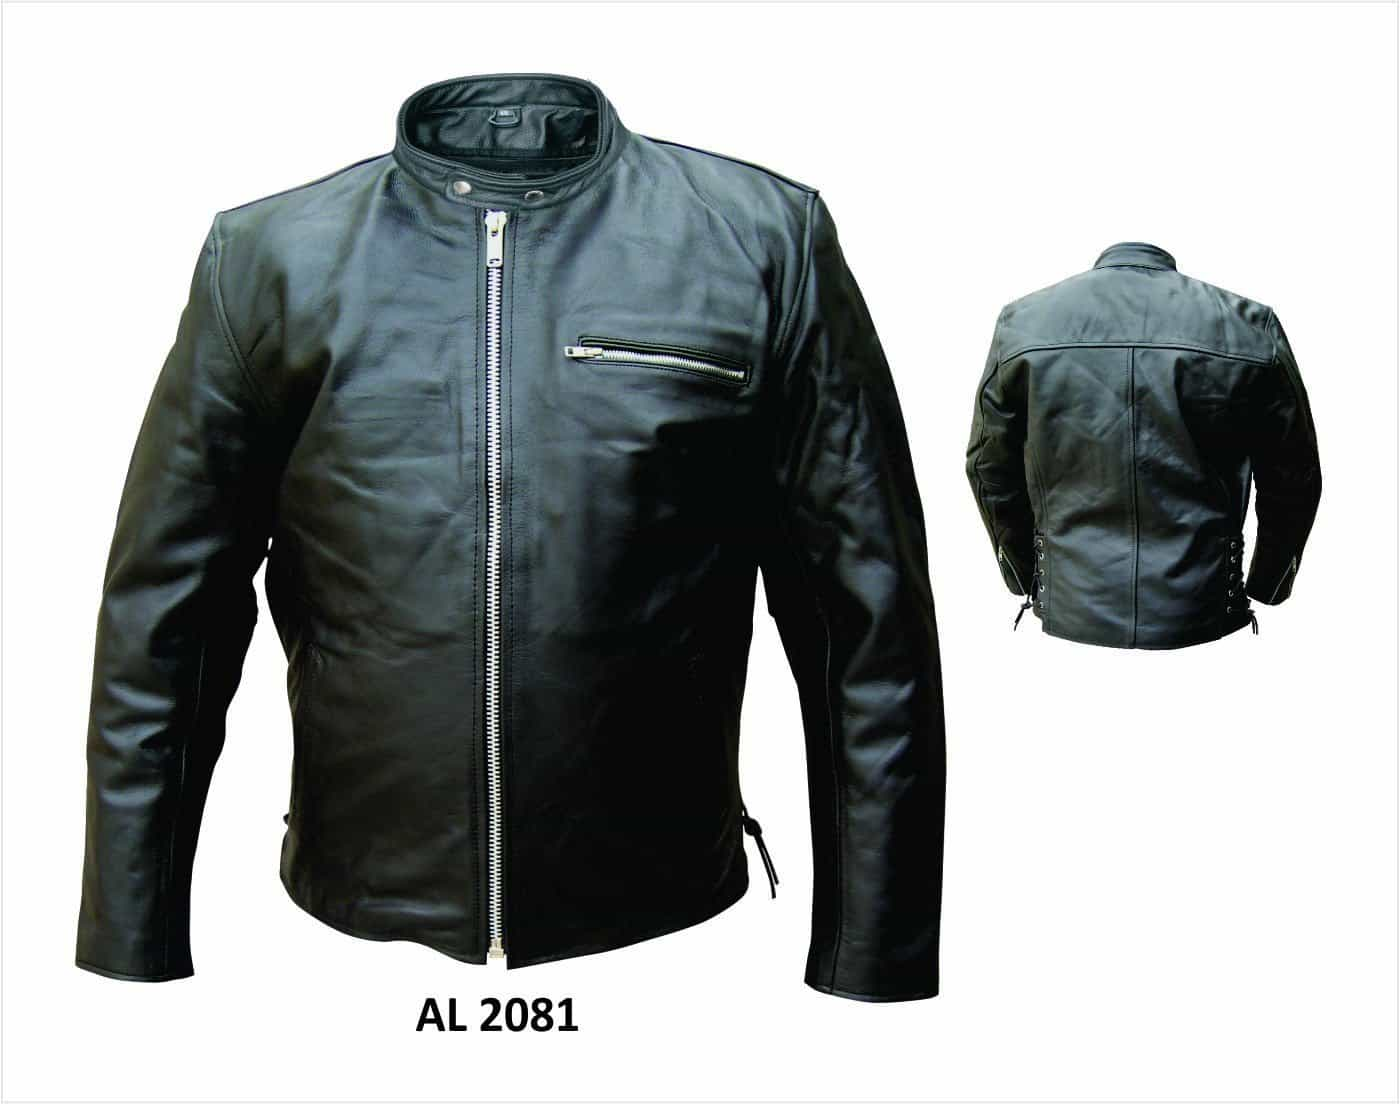 bedinhome - AL2081 Men'S Motorcycle Premium Buffalo Leather 1 Zippered chest Pocket Biker Jacket - All State Leather - Men's Leather Jacket